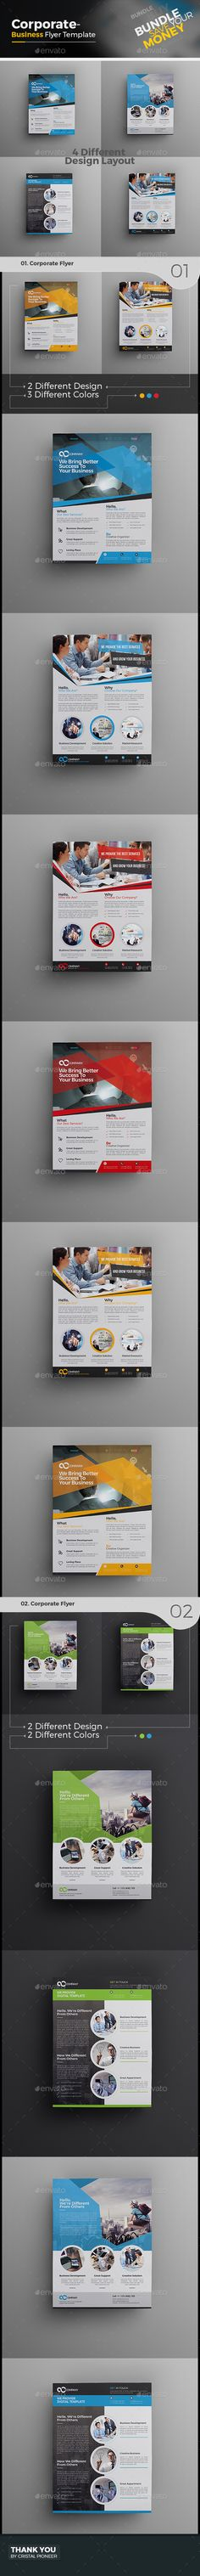 Buy Corporate Flyer Bundle by CRISTAL_P on GraphicRiver. Corporate Flyer Bundle is very easy to use and change text,color,size,look and everything so please don't worry abou. Psd Flyer Templates, Business Flyer Templates, Business Card Design, Flyer Design, Layout Design, Print Design, Graphic Design, Corporate Flyer, Corporate Business